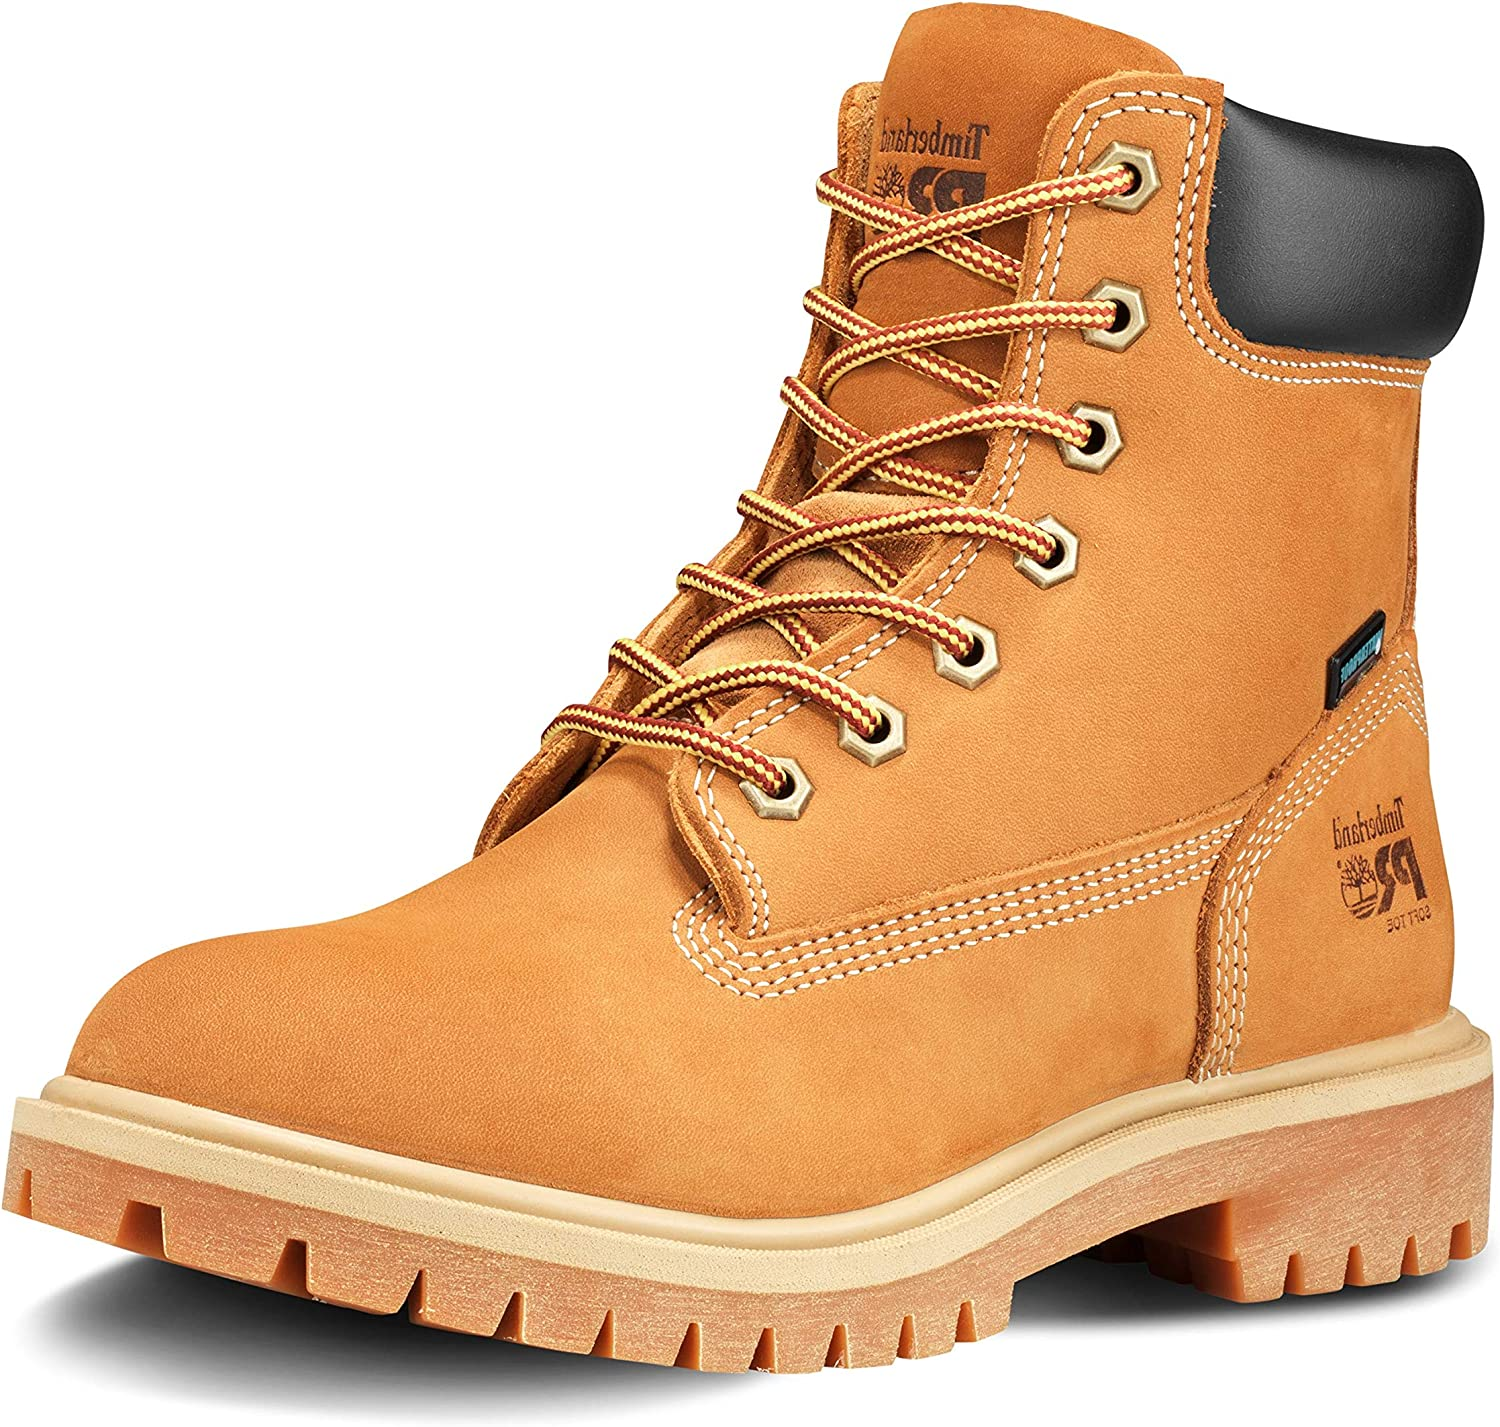 "Timberland PRO Women's Direct Attach 6"" Soft Toe Waterproof Industrial Boot"